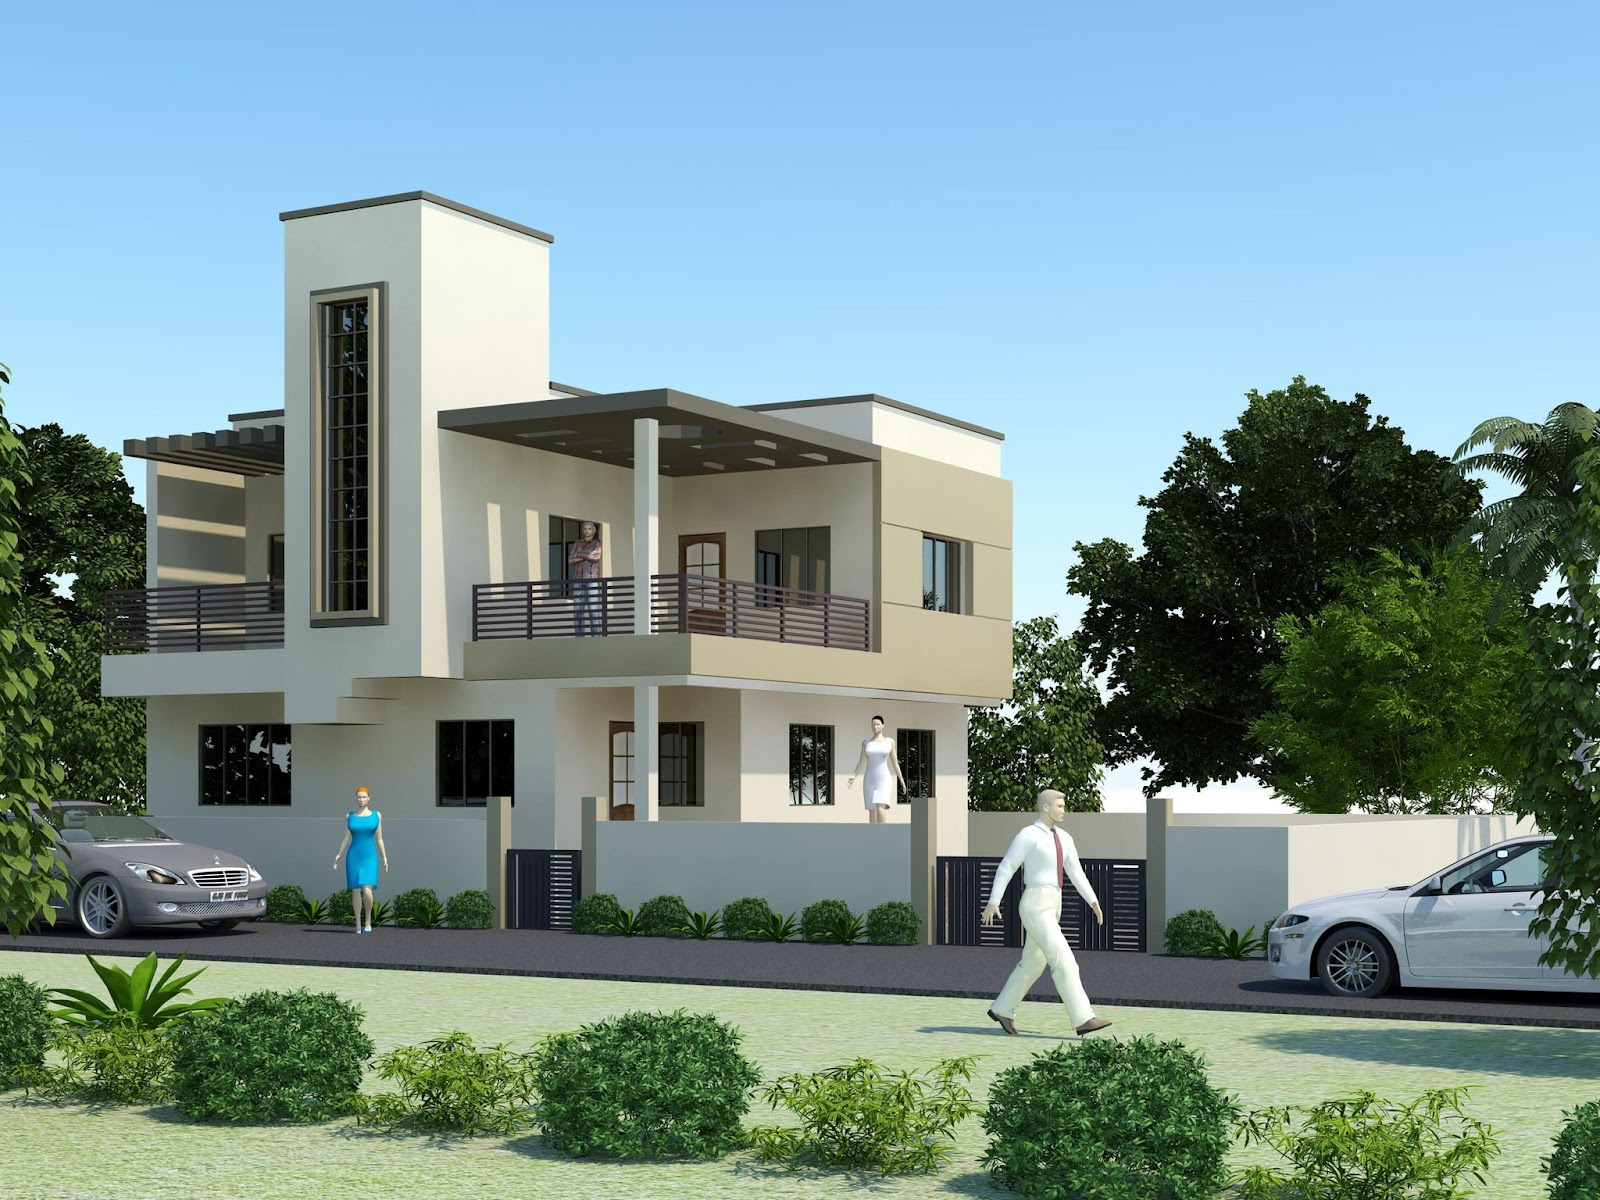 Modern homes exterior designs front views pictures for Modern home designs exterior